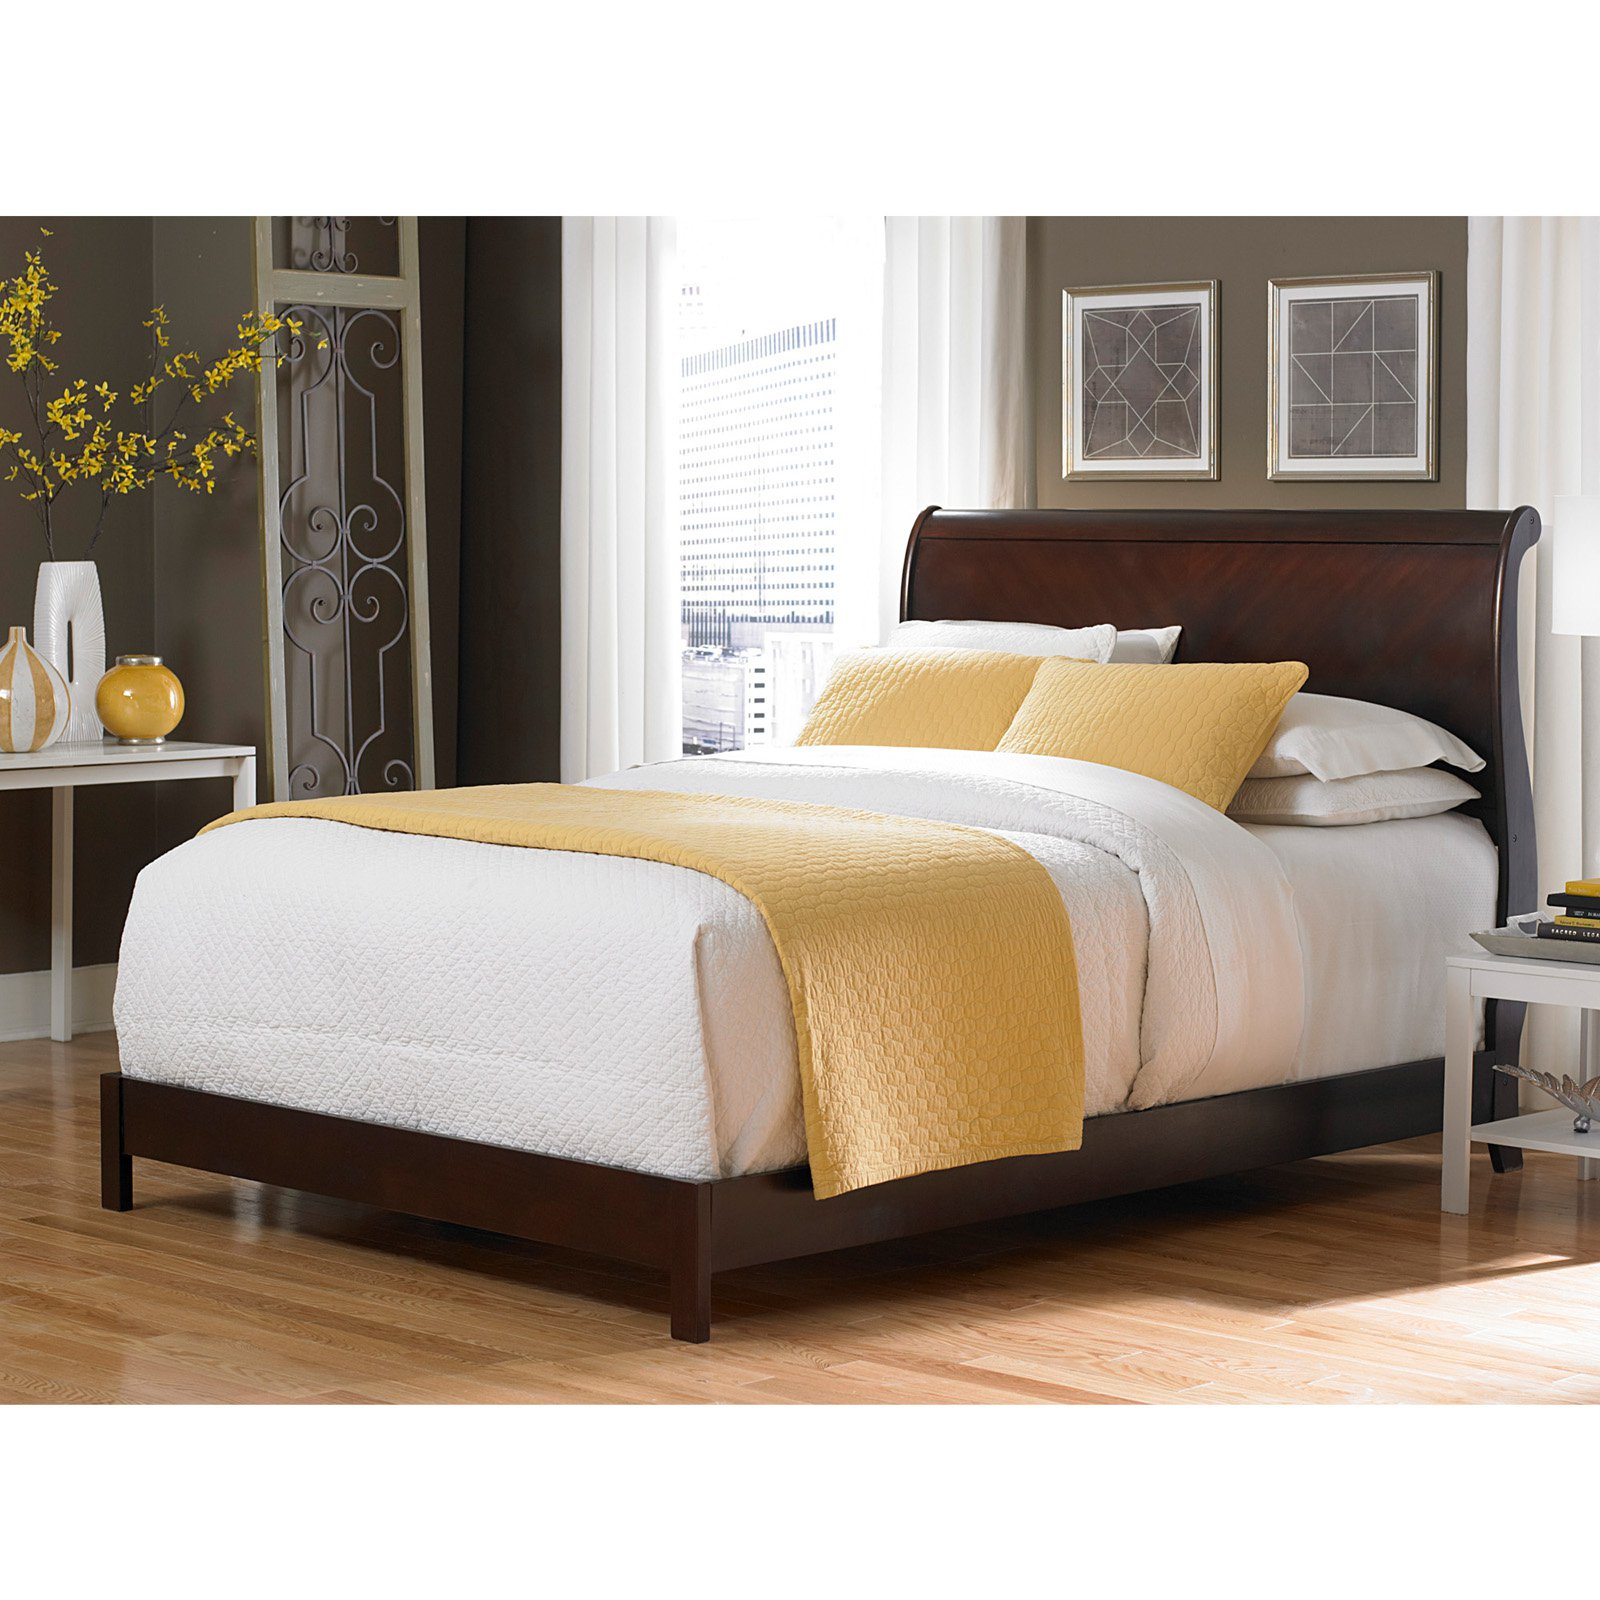 Bridgeport Complete Wood Bed and Bedding Support System with Curved Sleigh Headboard, Espresso Finish, Queen